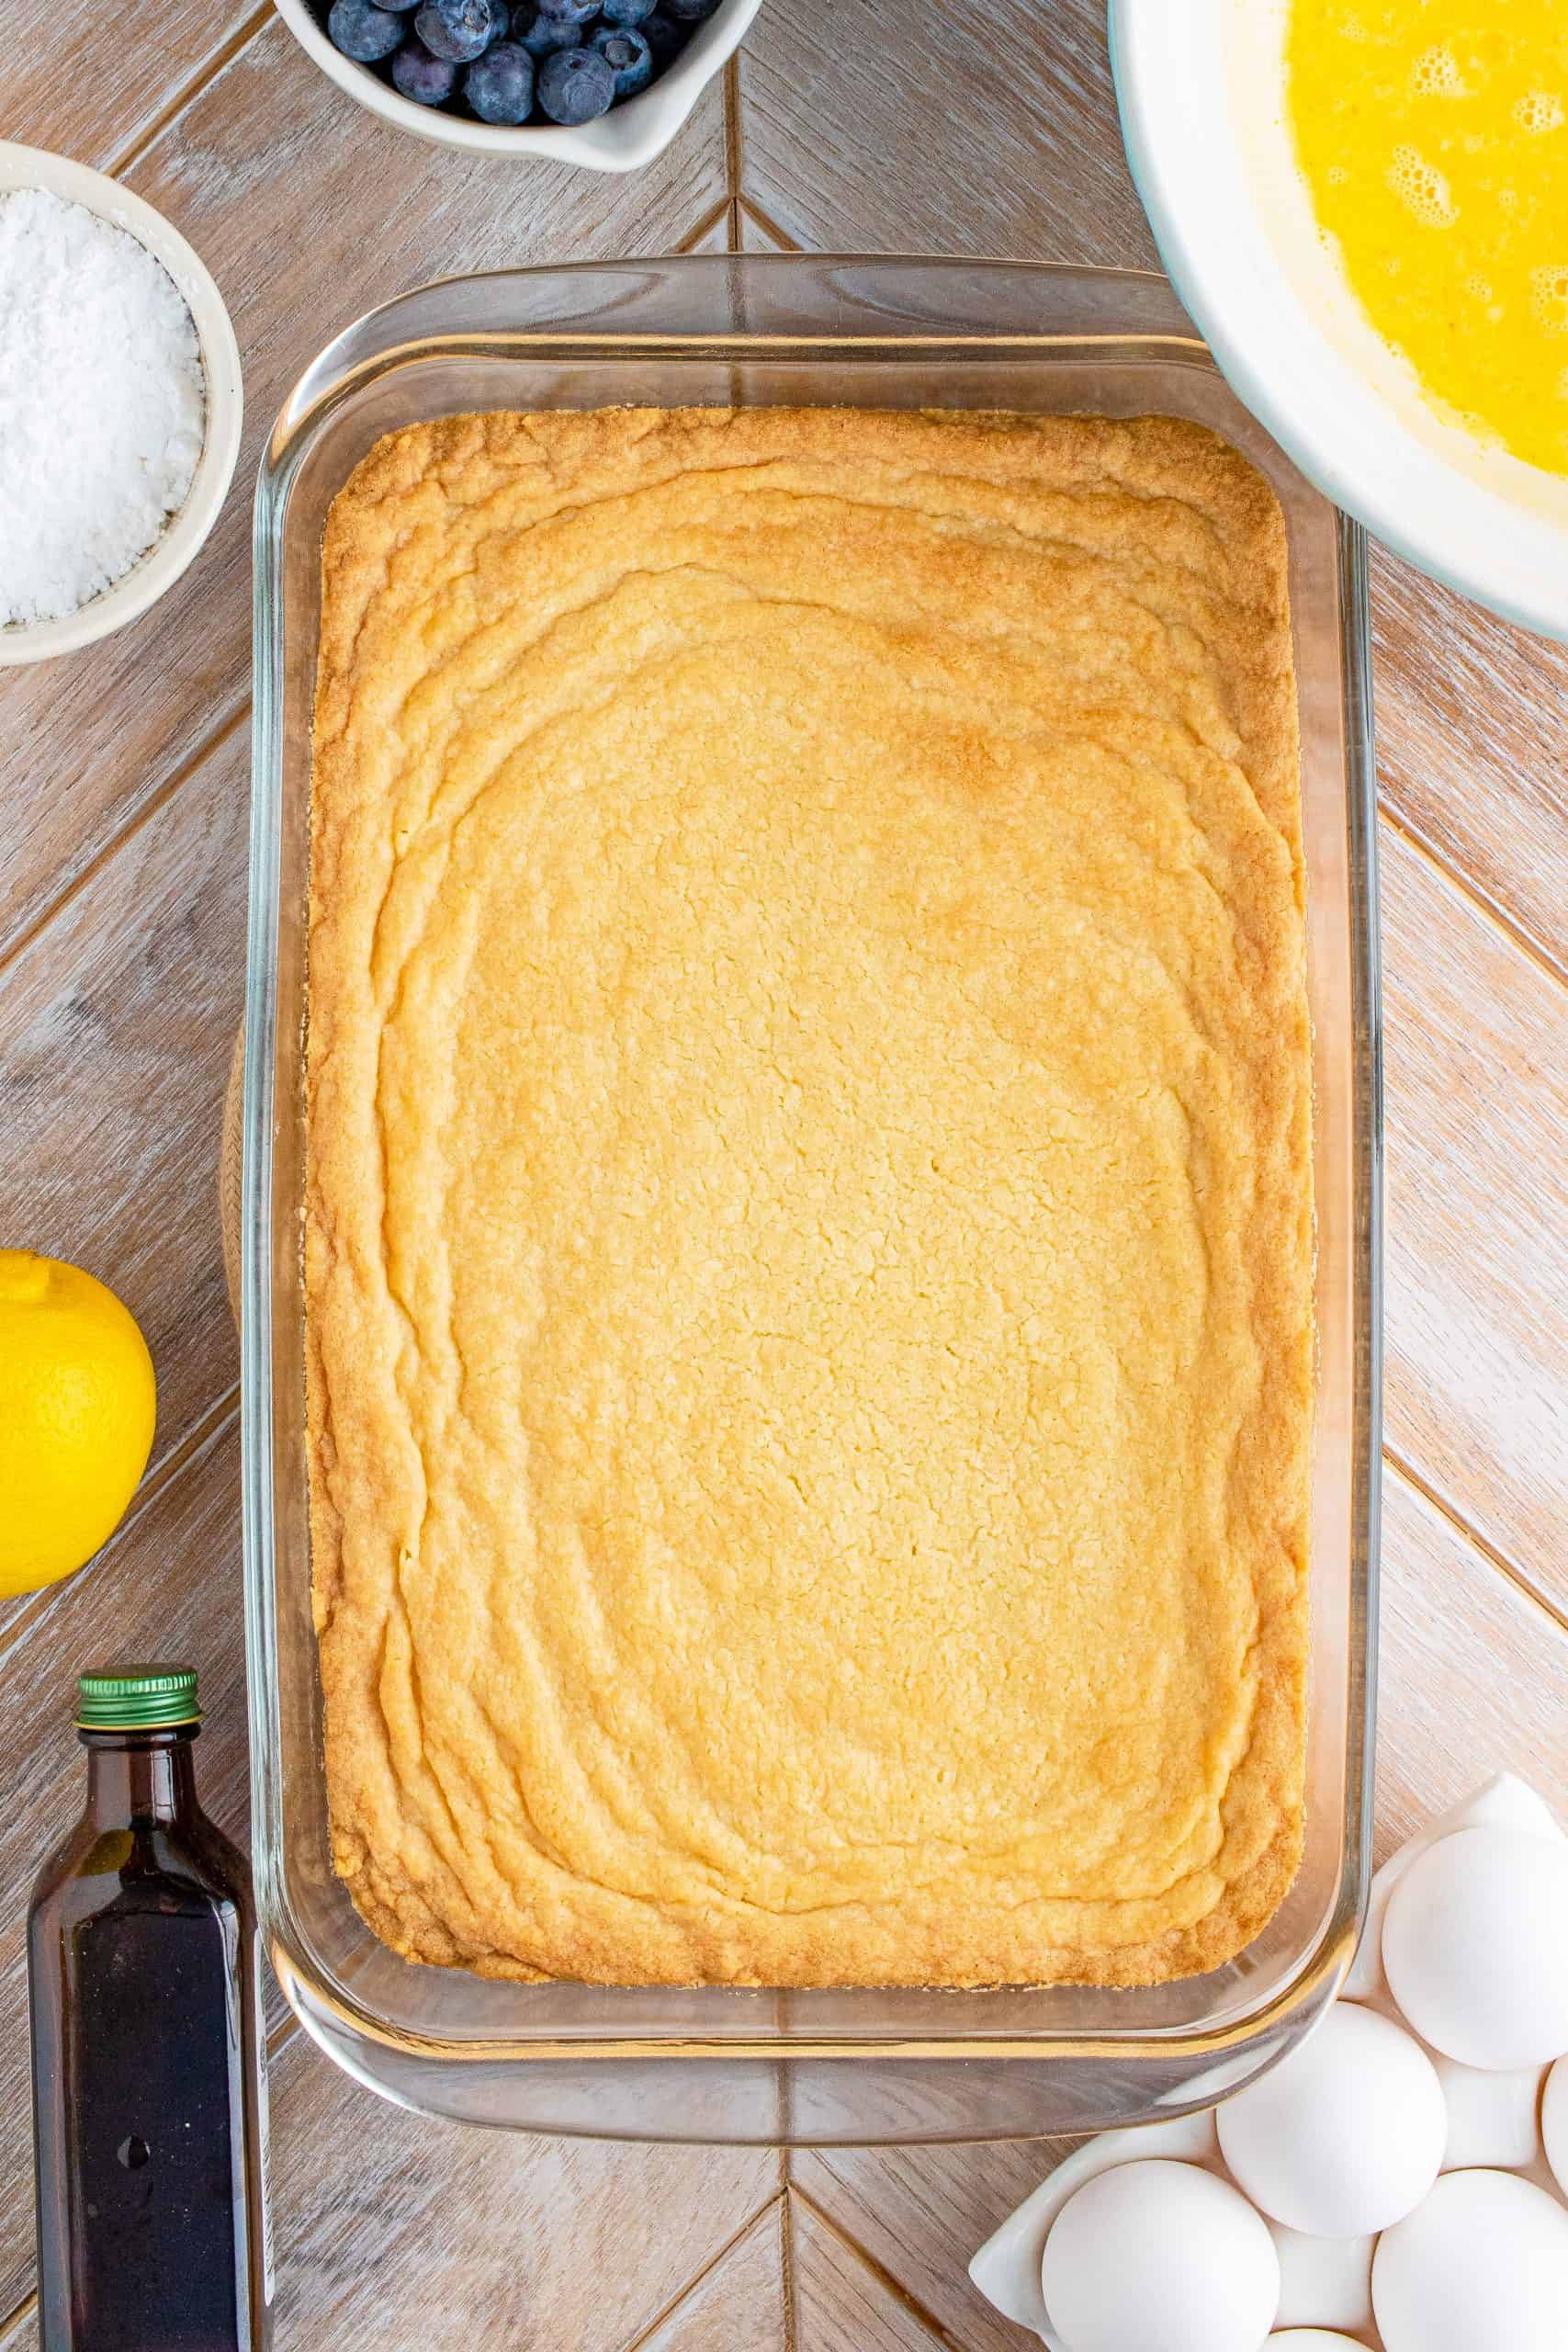 Cooked crust in baking pan right out of oven.